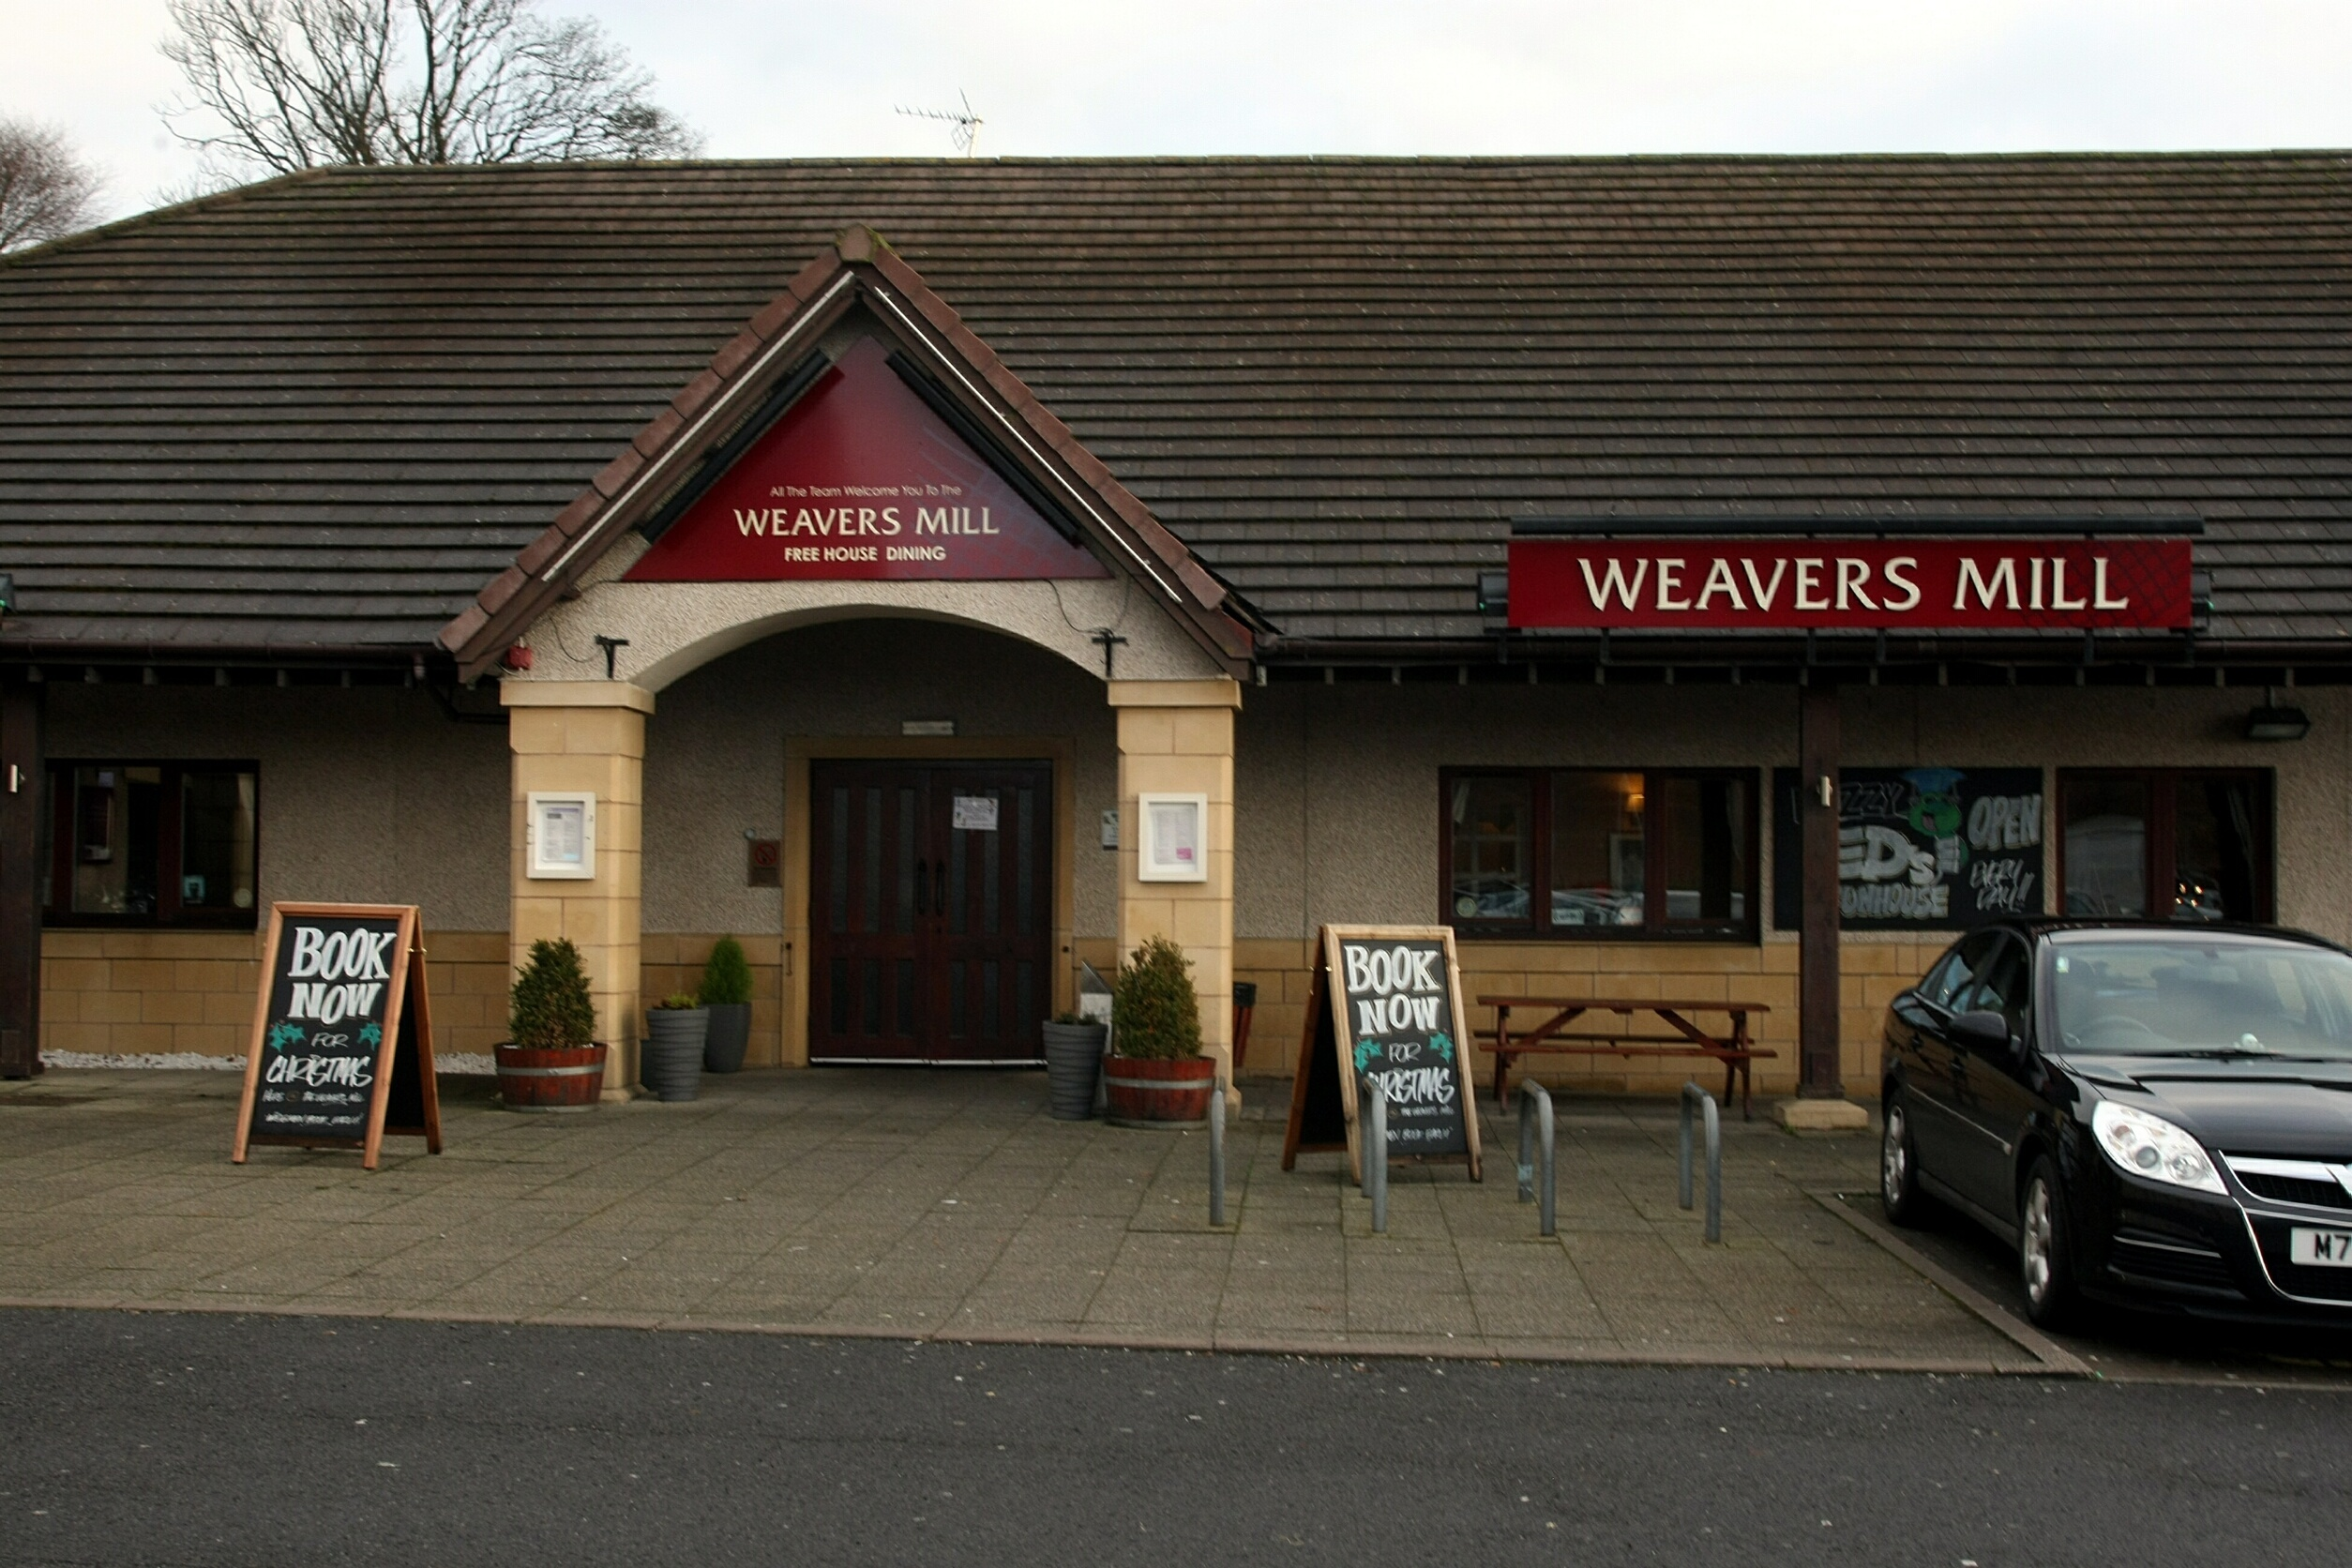 The entrance to Weavers Mill at the Camperdown Leisure Park